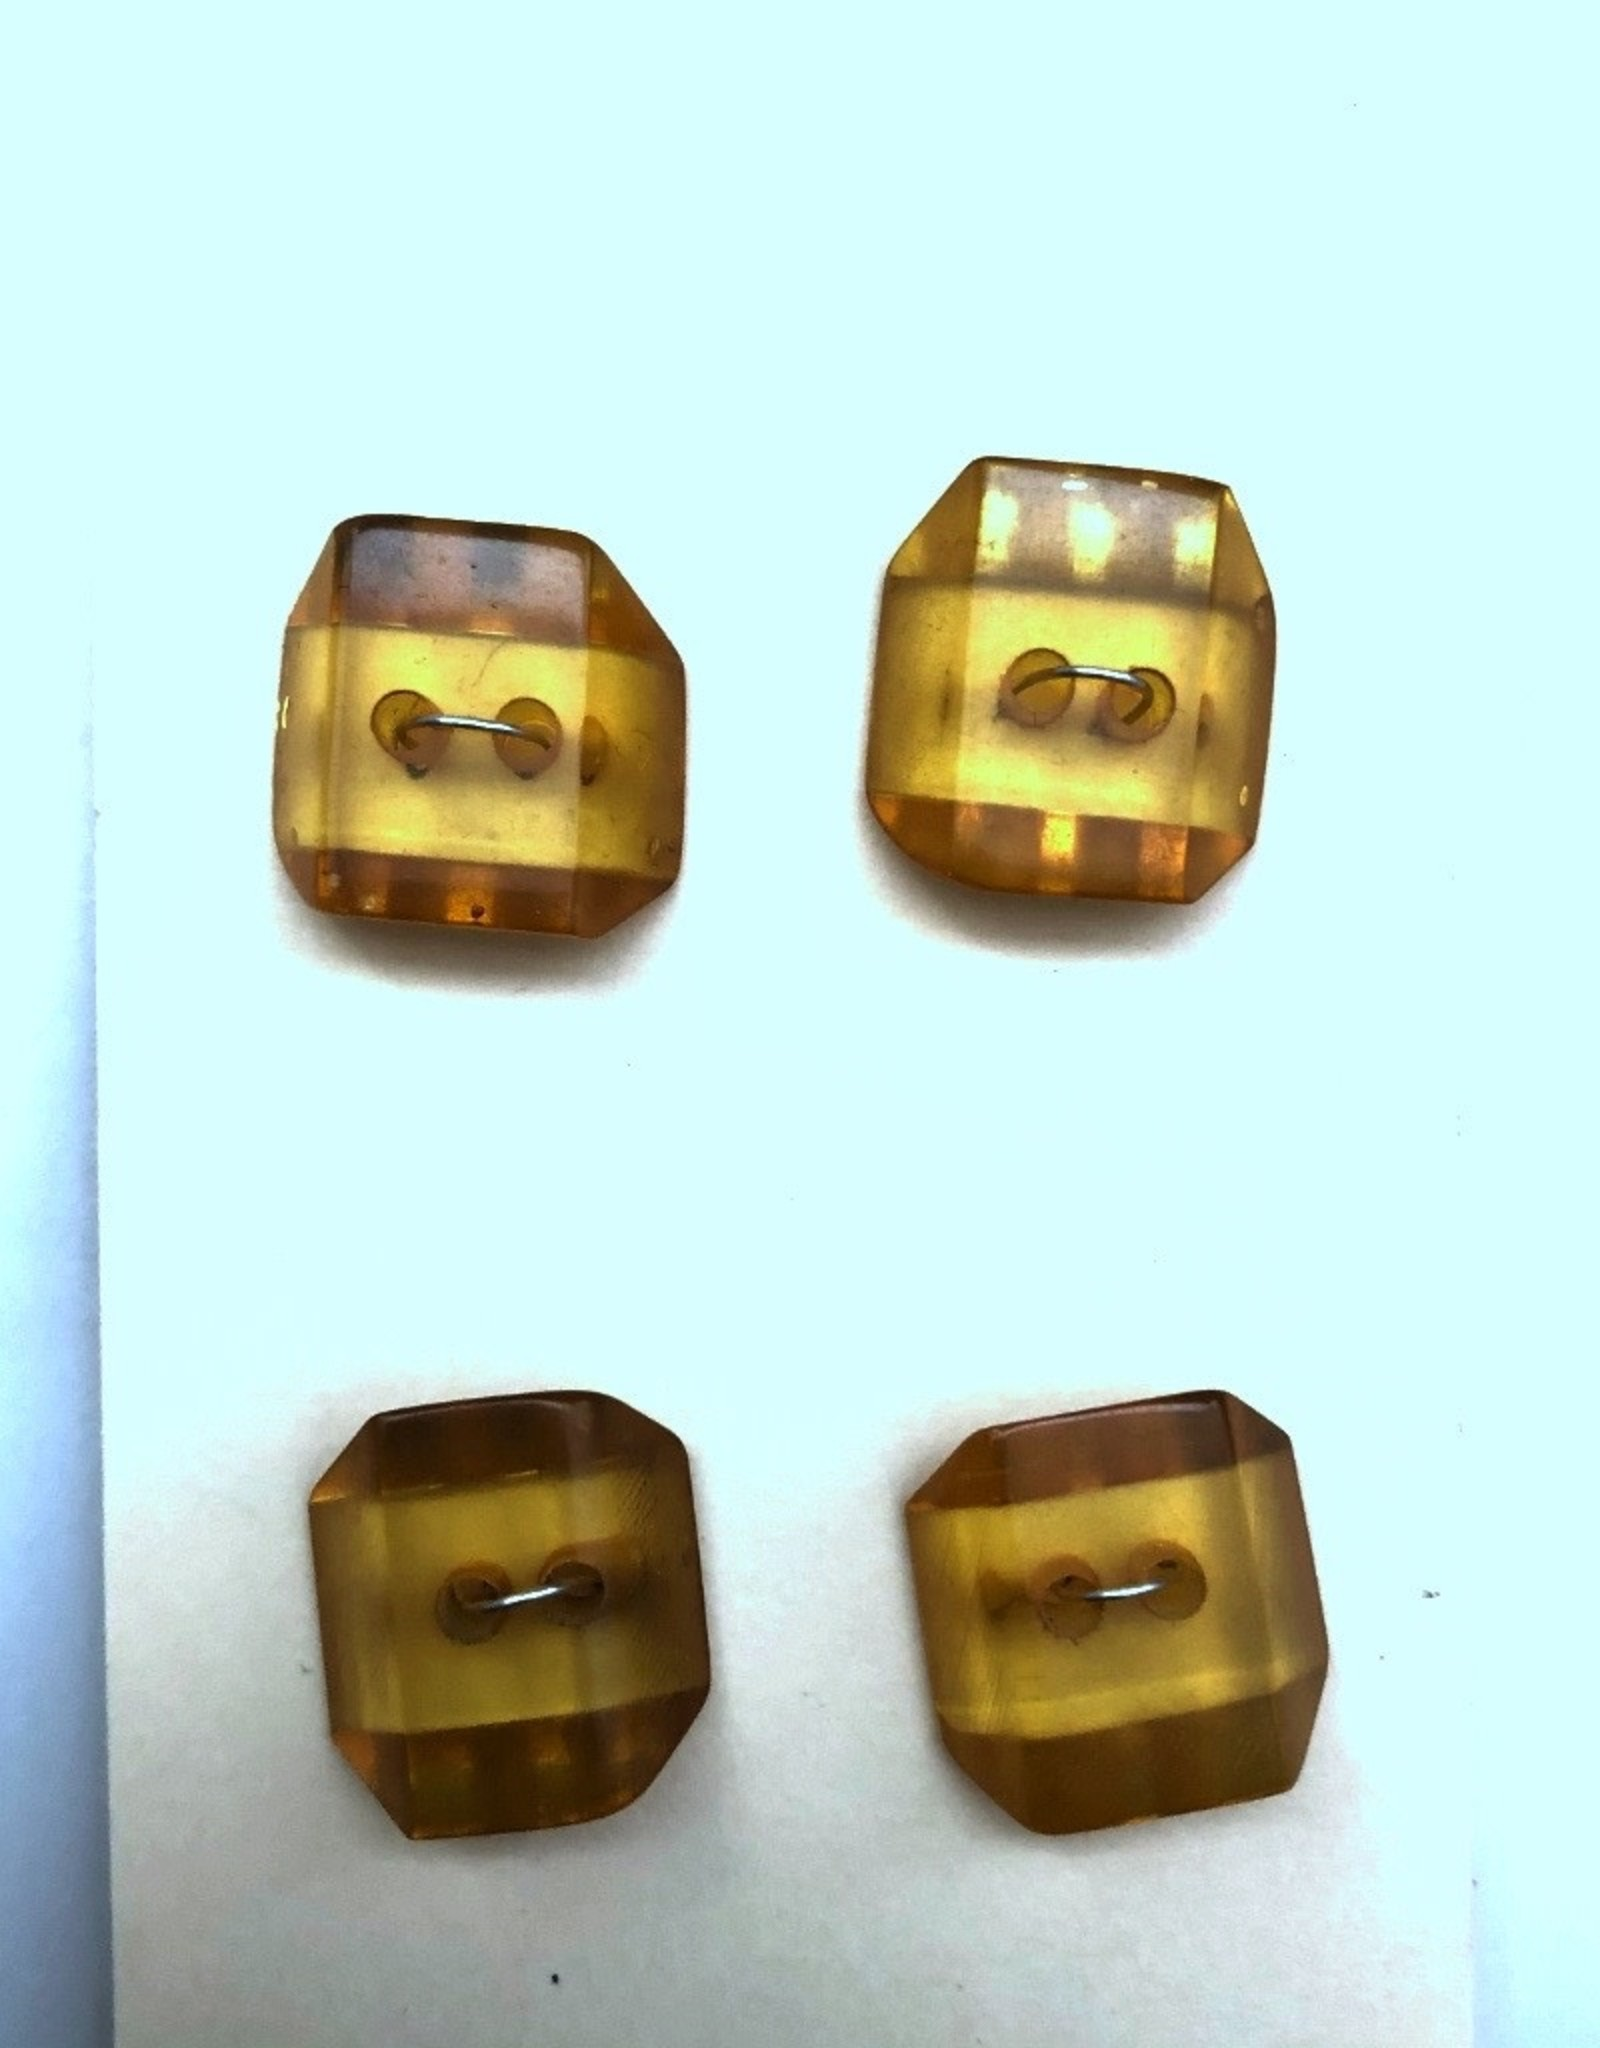 OOAK Vintage Buttons - Small Amber Buttons - 4 per card